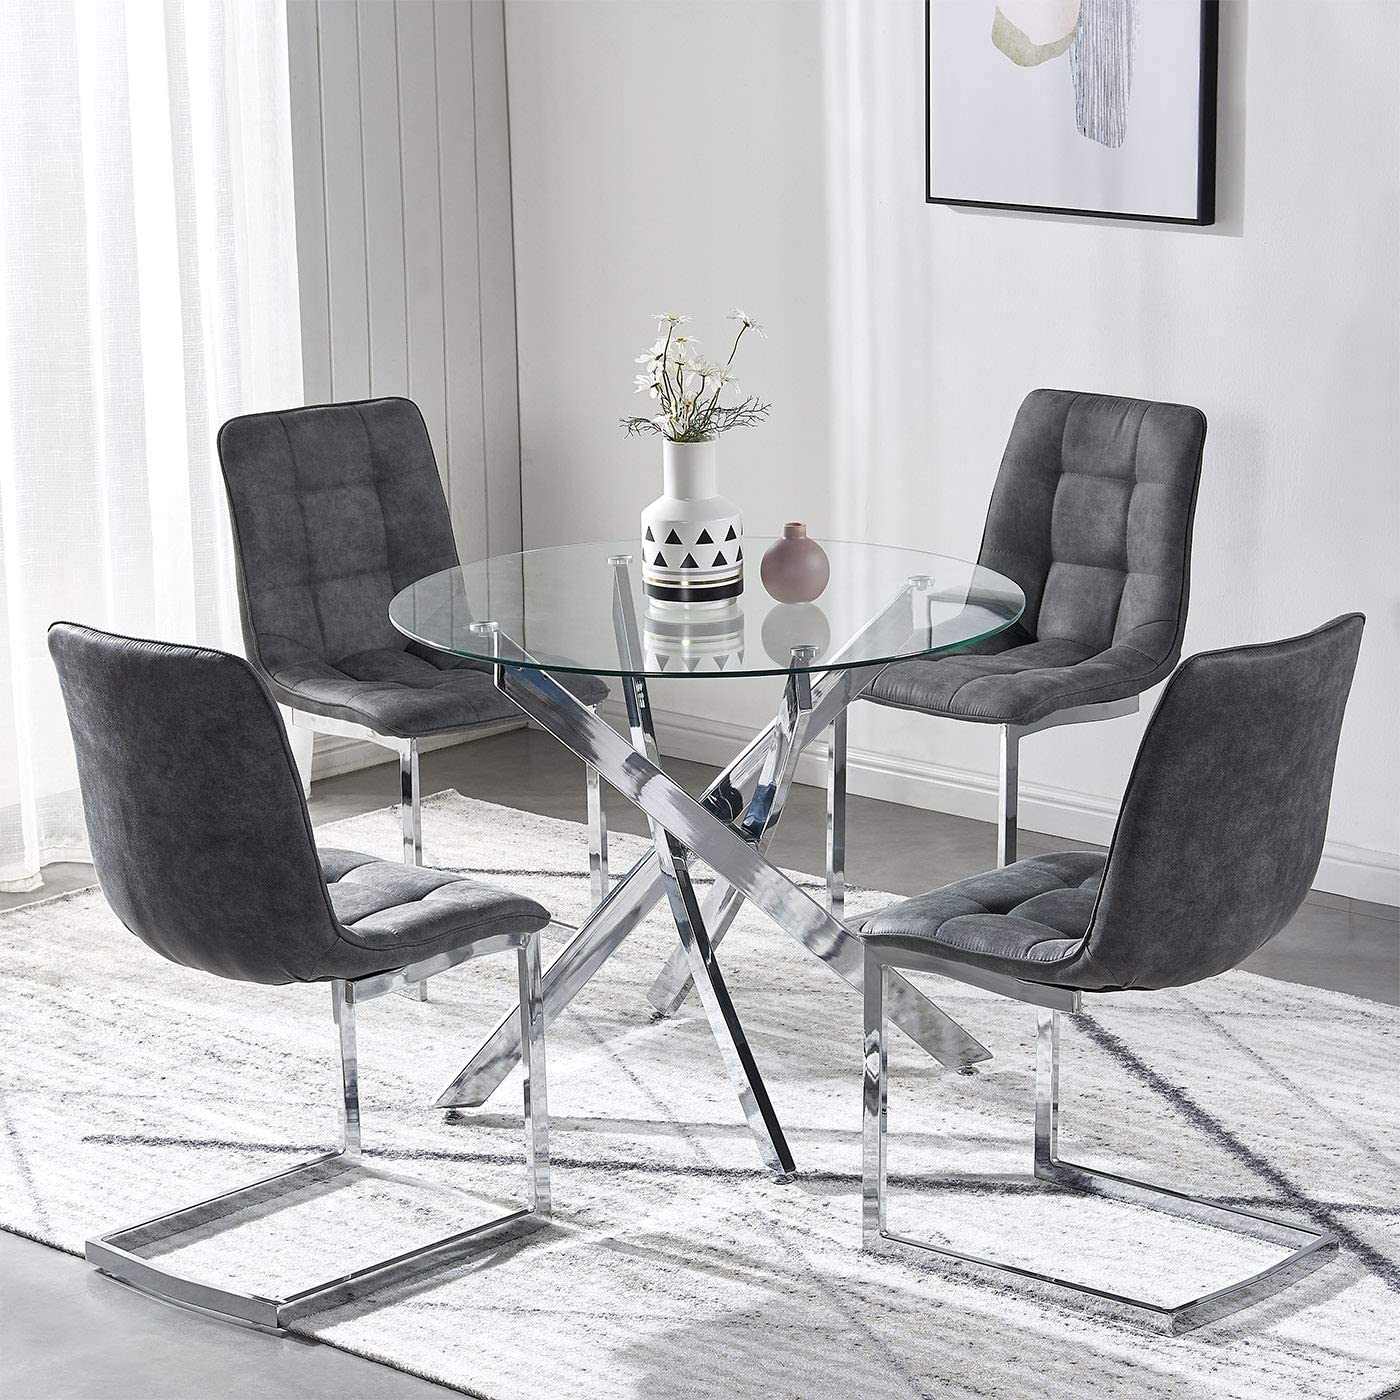 Tonvision Clear Glass Dining Table With 4 Chairs Sturdy Metal Legs Suede Upholstered Cushion 90cm Diameter Round Top 4 Seater Small Kitchen Dinner Living Coffee Room Charcoal Grey Chrome Base Amazon Co Uk Kitchen